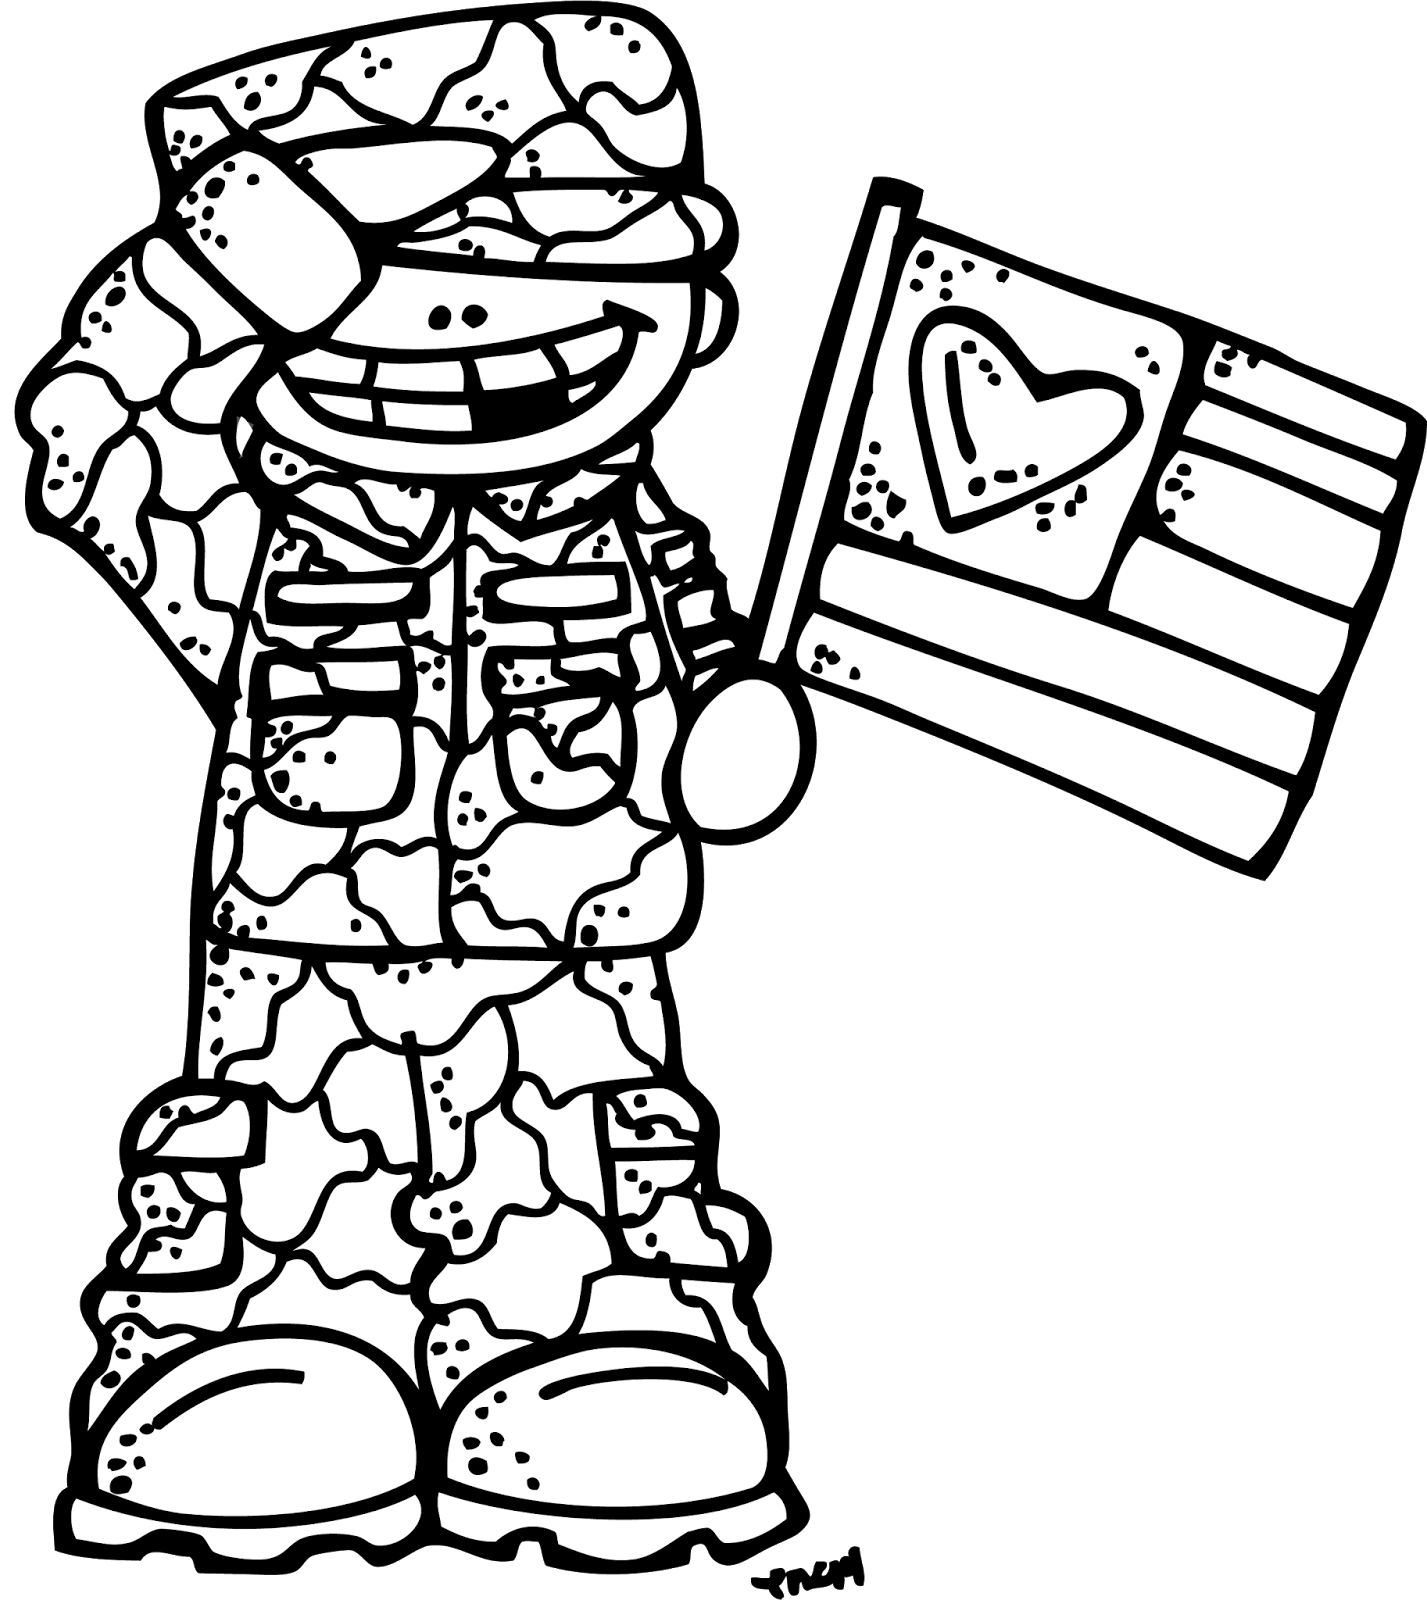 image transparent Army black and white clipart. Melonheadz illustrating always in